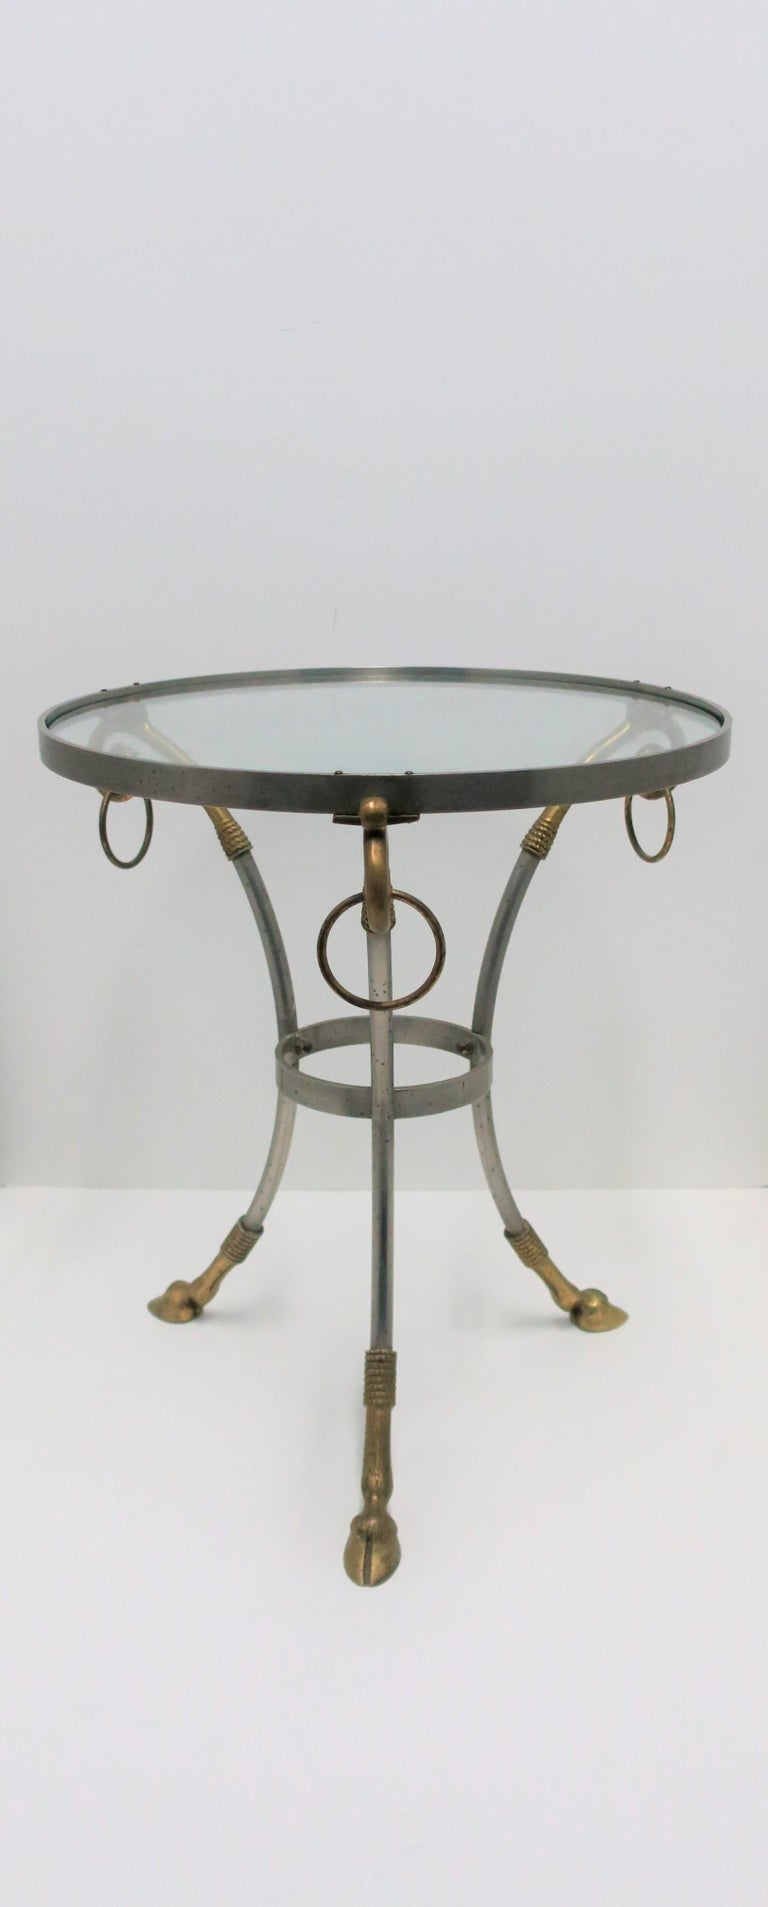 A small and substantial French Gueridon round side or drinks table with brass rams head hoof detailing, in the style of designer Maison Jansen, circa 20th century, France. Table is matte steel and brass - brass loop/ring detail at top,  hoof/legs at